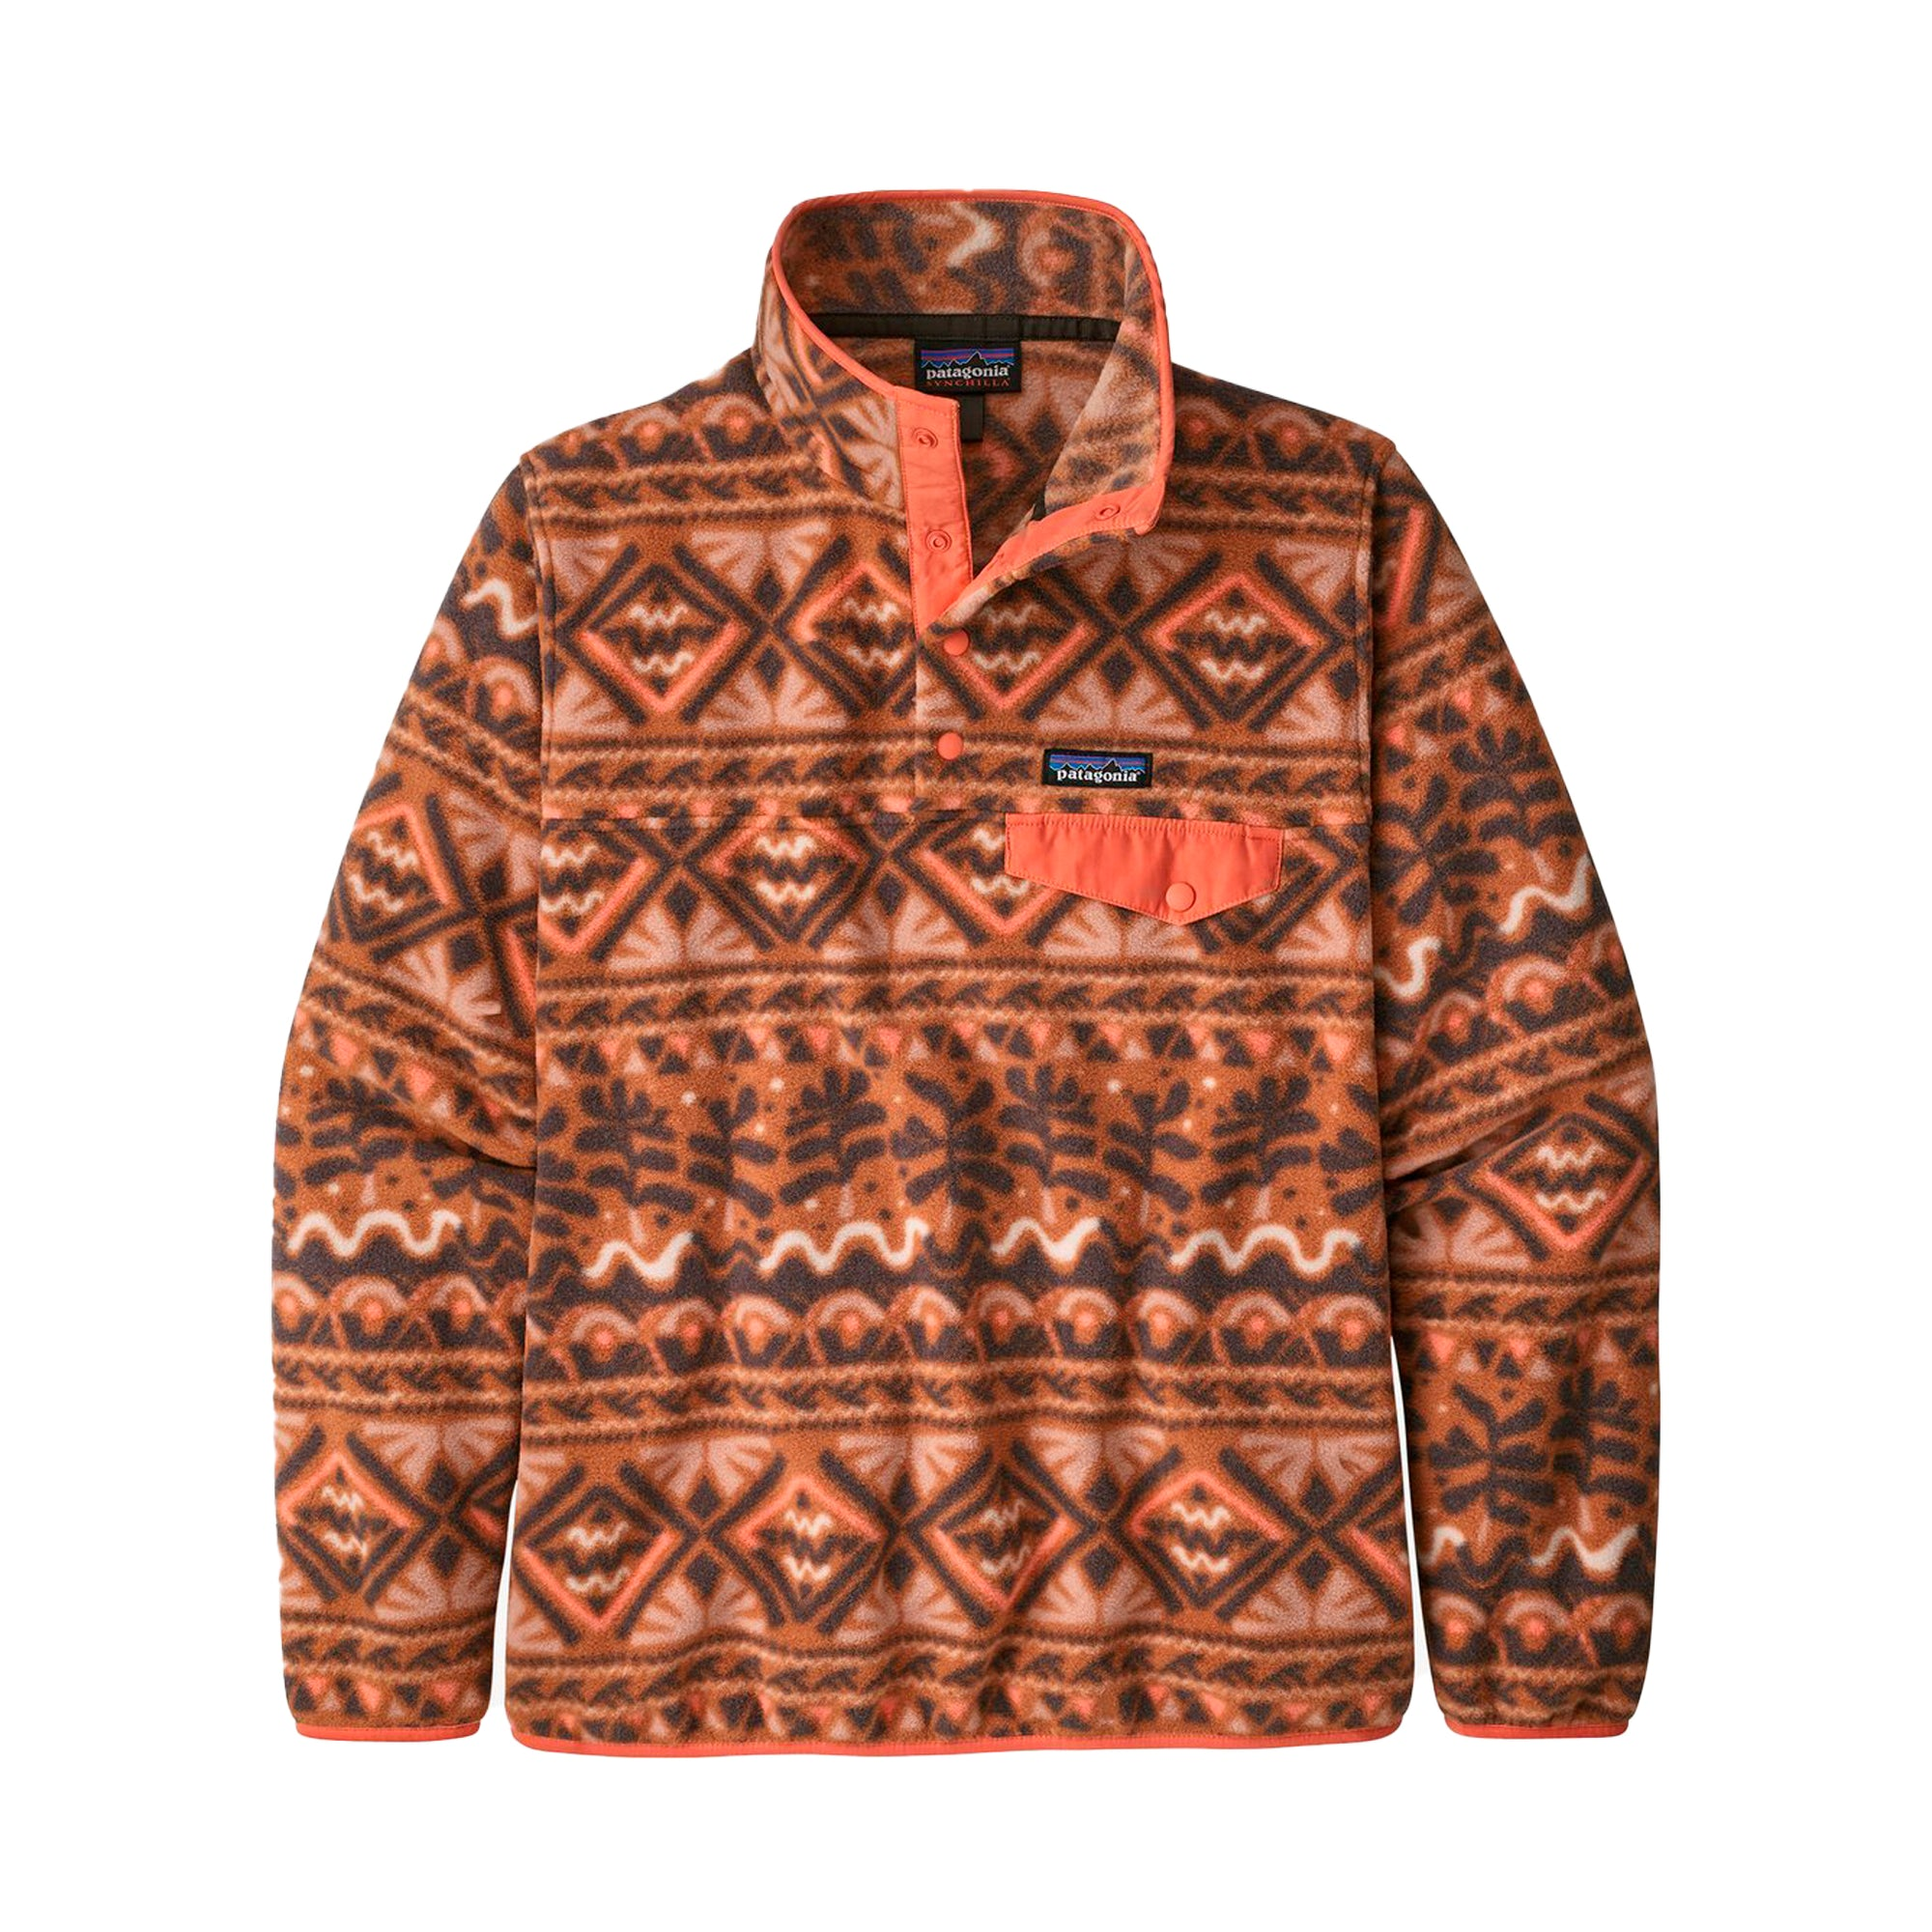 Patagonia Womens LW Synch Snap-T P/O: Mangrove: Henna Brown - The Union Project